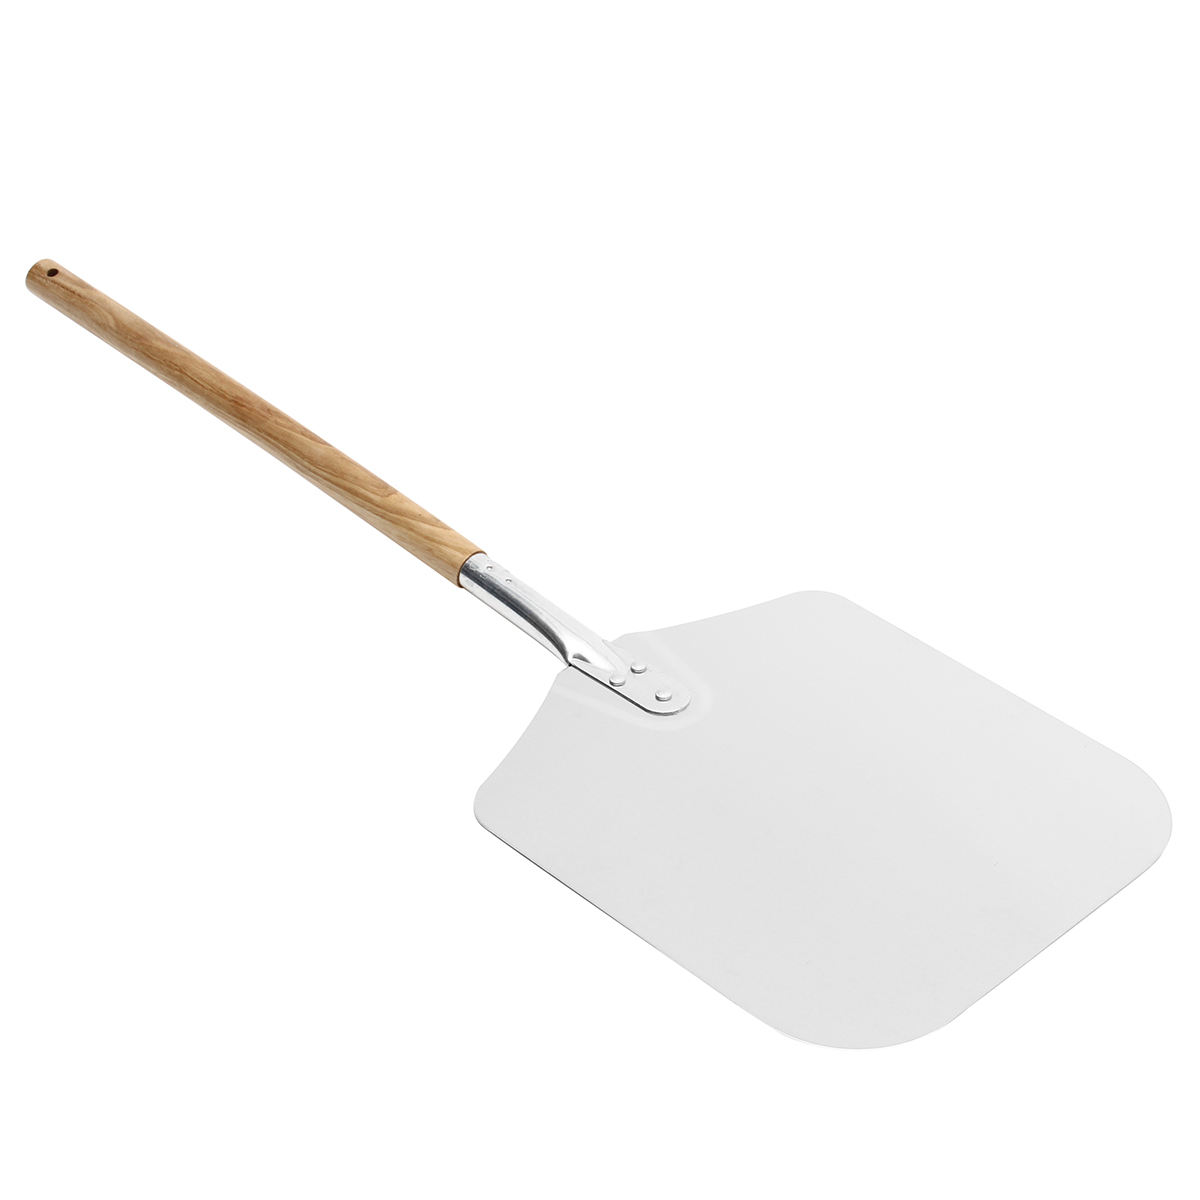 Aluminum Alloy 90cm Pizza Peels Spatula Paddle Wooden Handle Cake Baking Tools Bakeware Cheese Cutter Lifter Tool Pizza Shovel